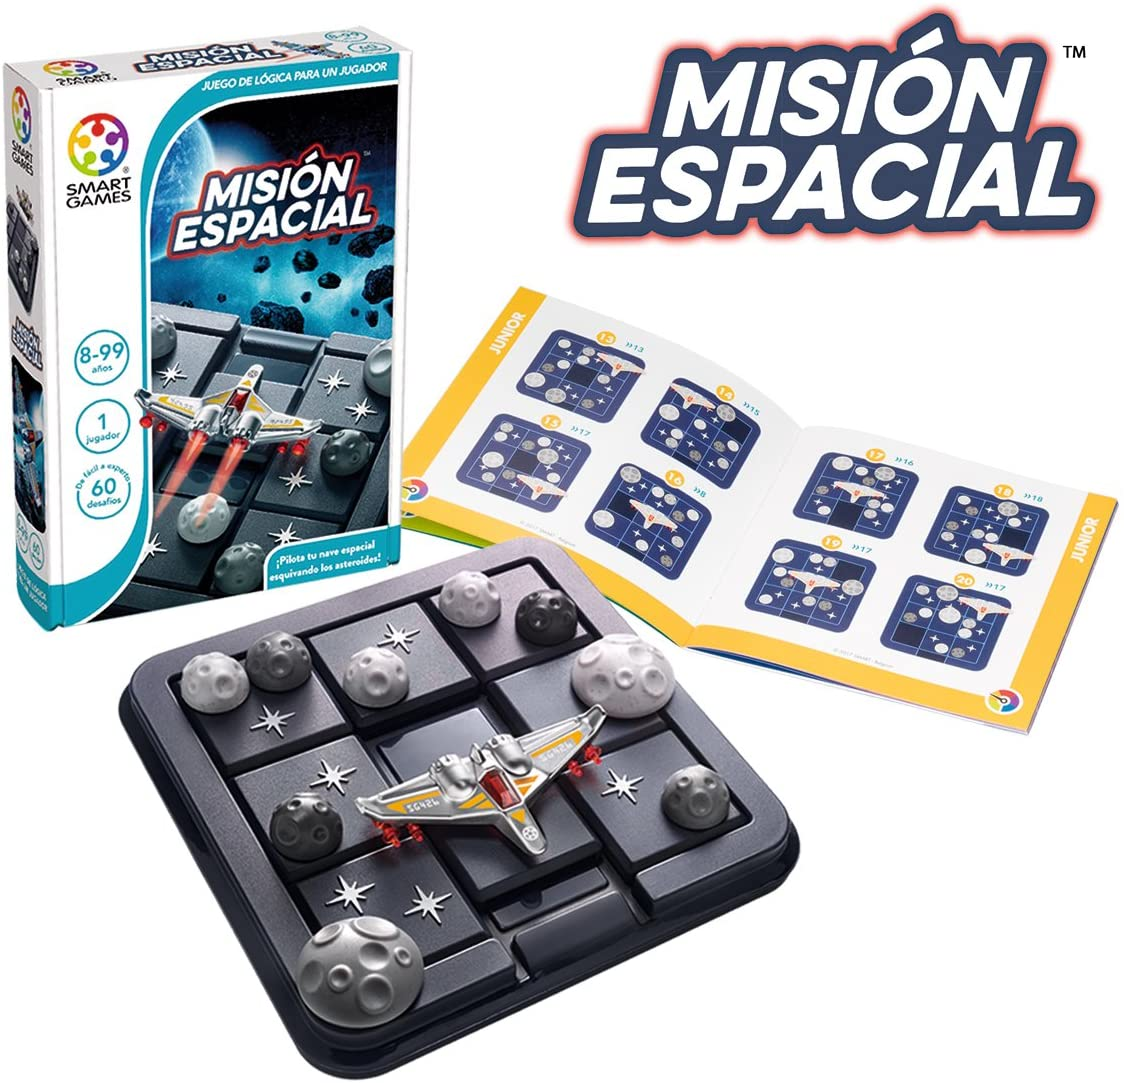 Smart Games Mision espacial